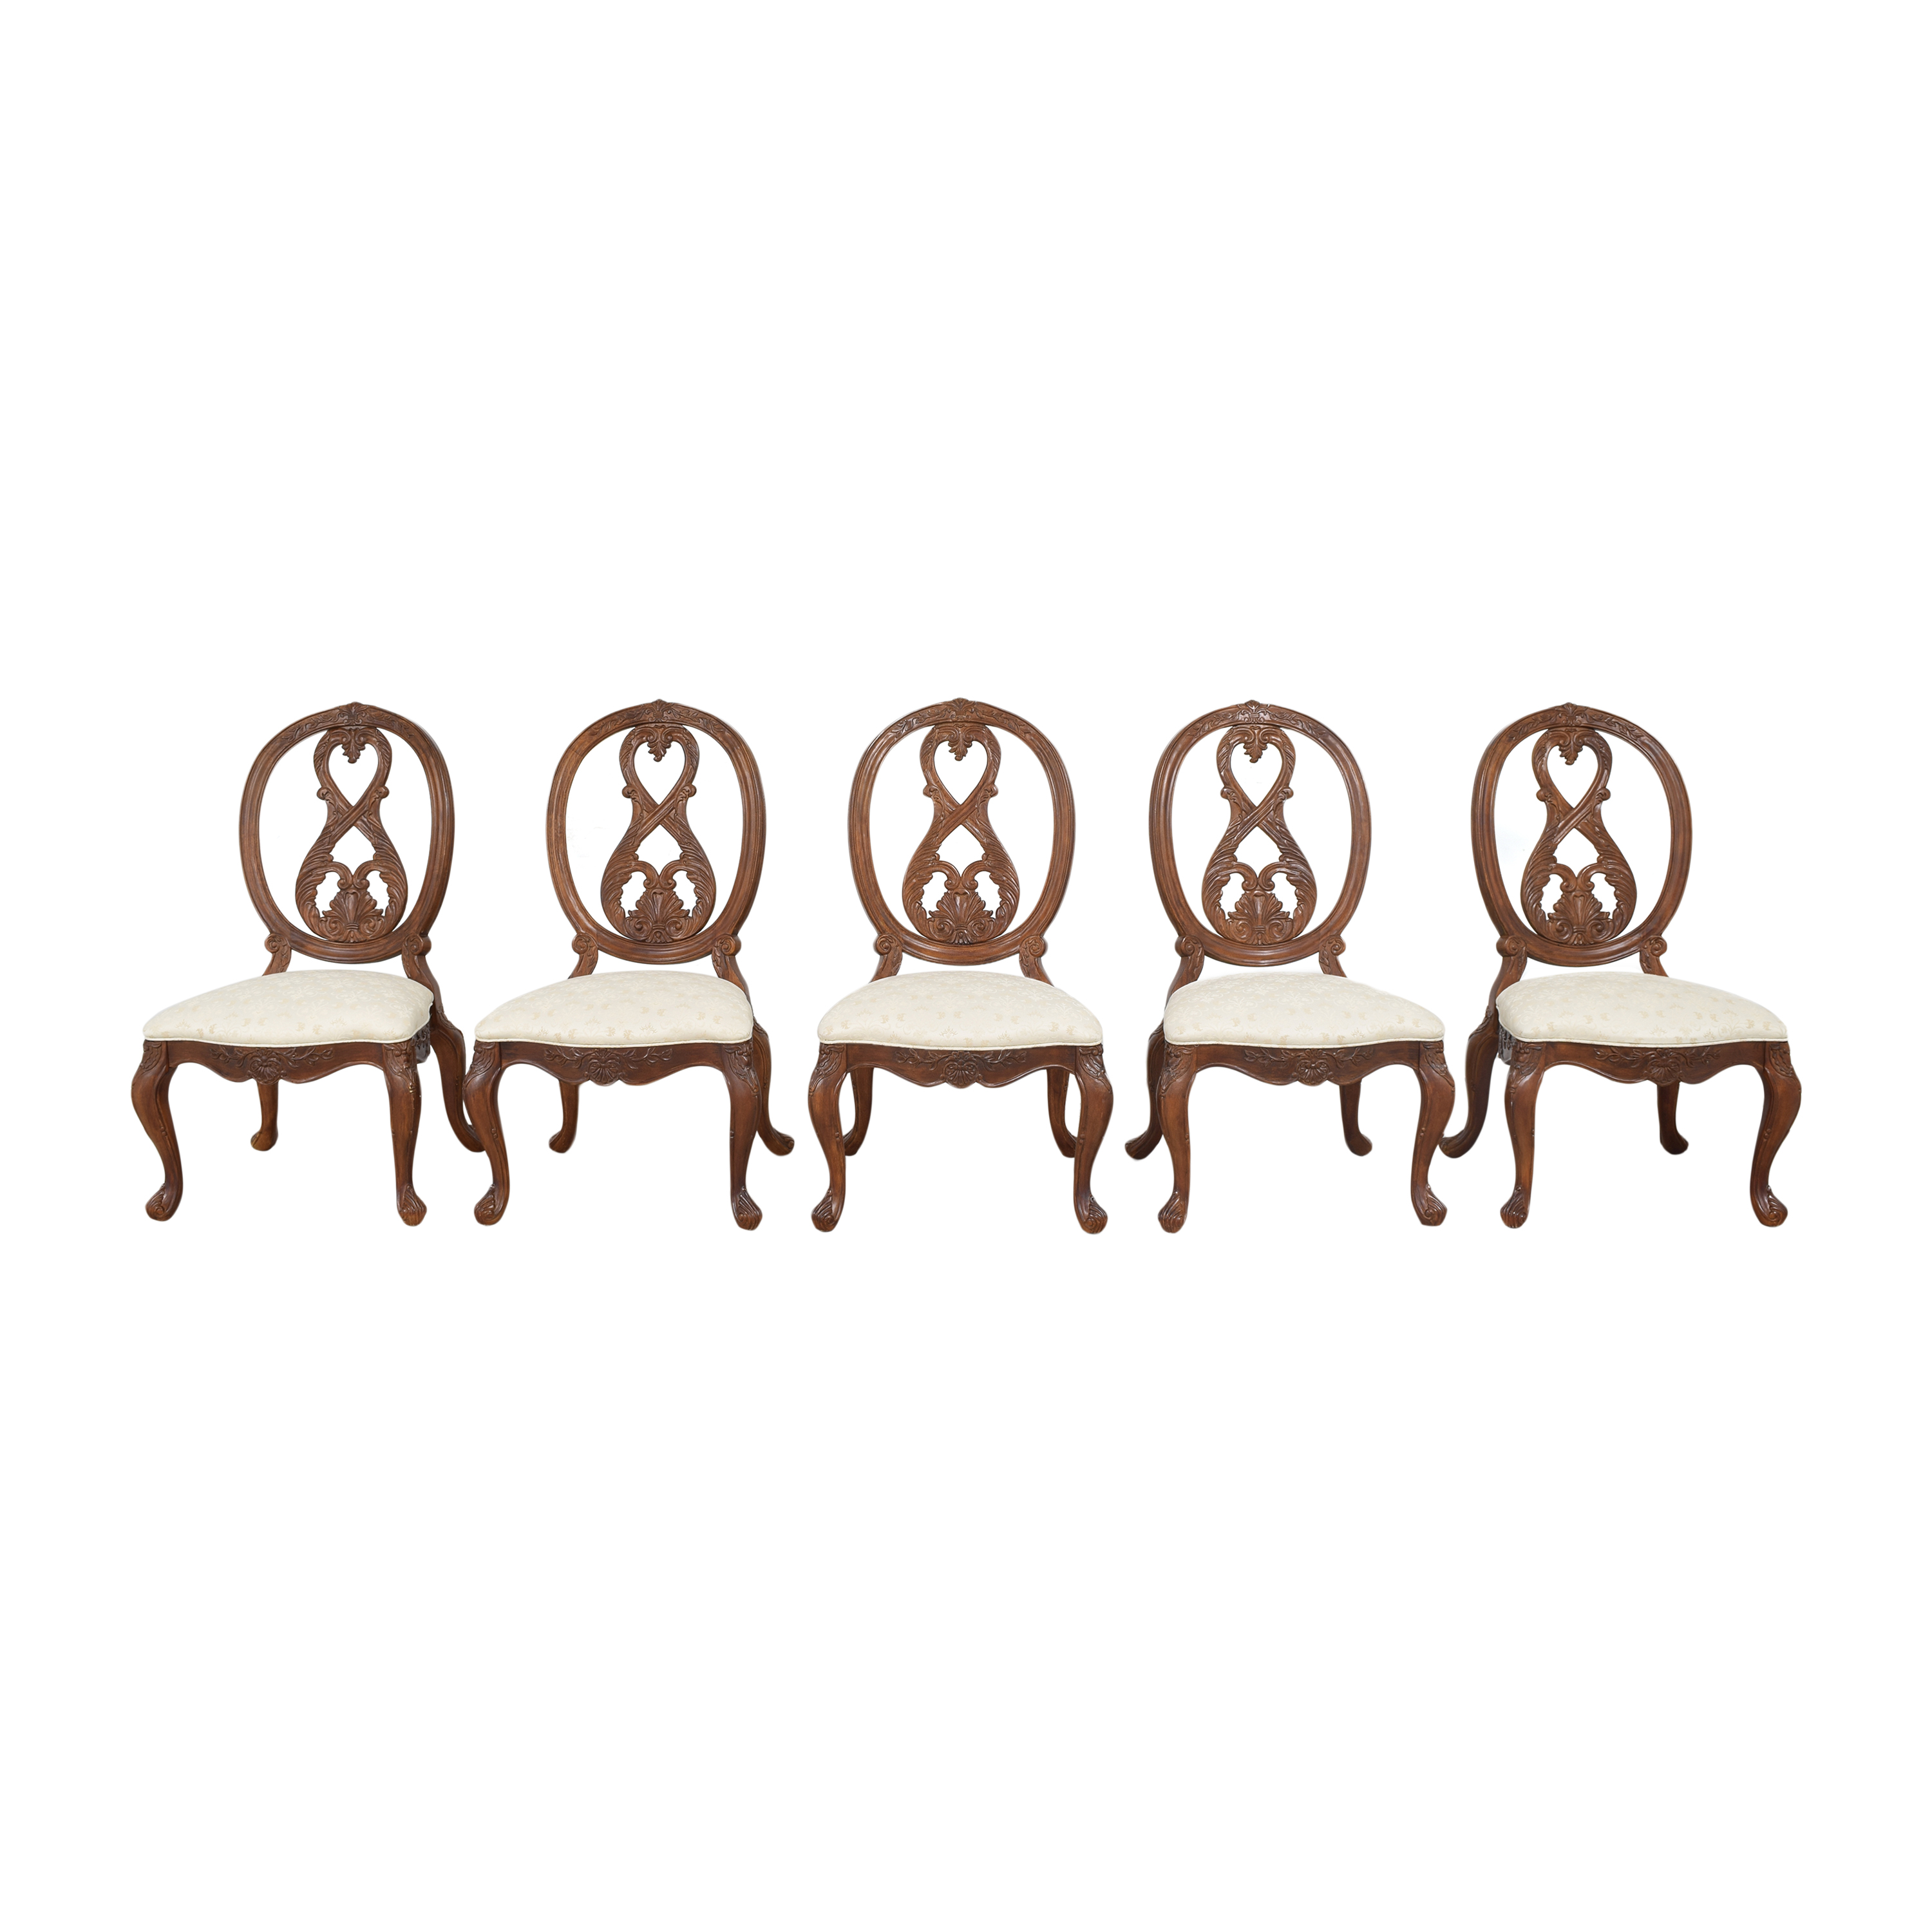 American Drew American Drew Jessica McClintock Home Oval Back Side Dining Chairs on sale